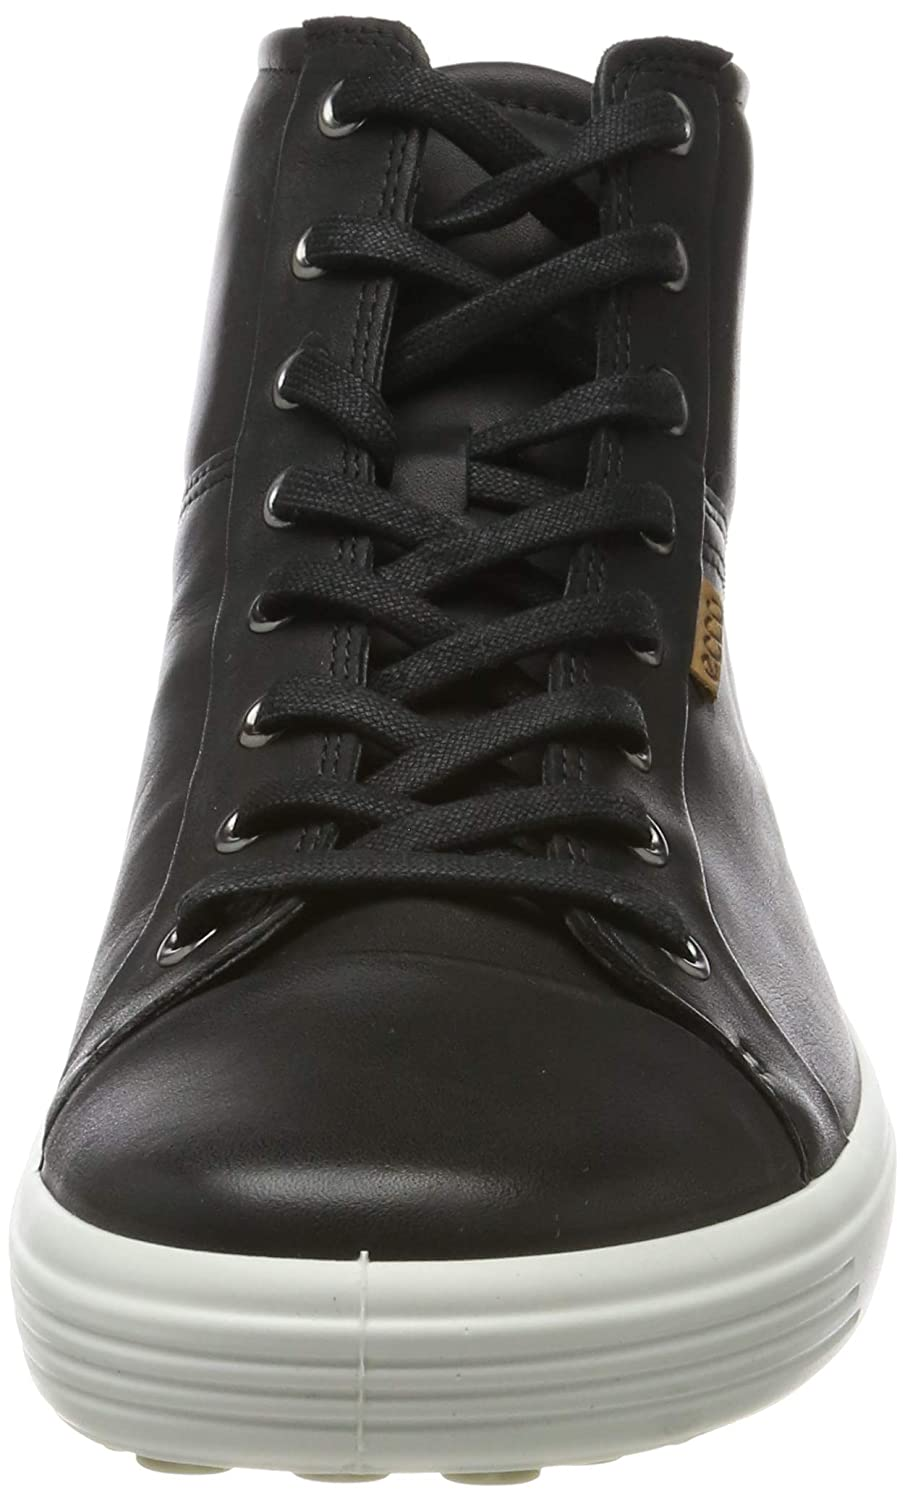 ECCO Shoes Footwear Womens Soft 7 High Top Ankle Bootie